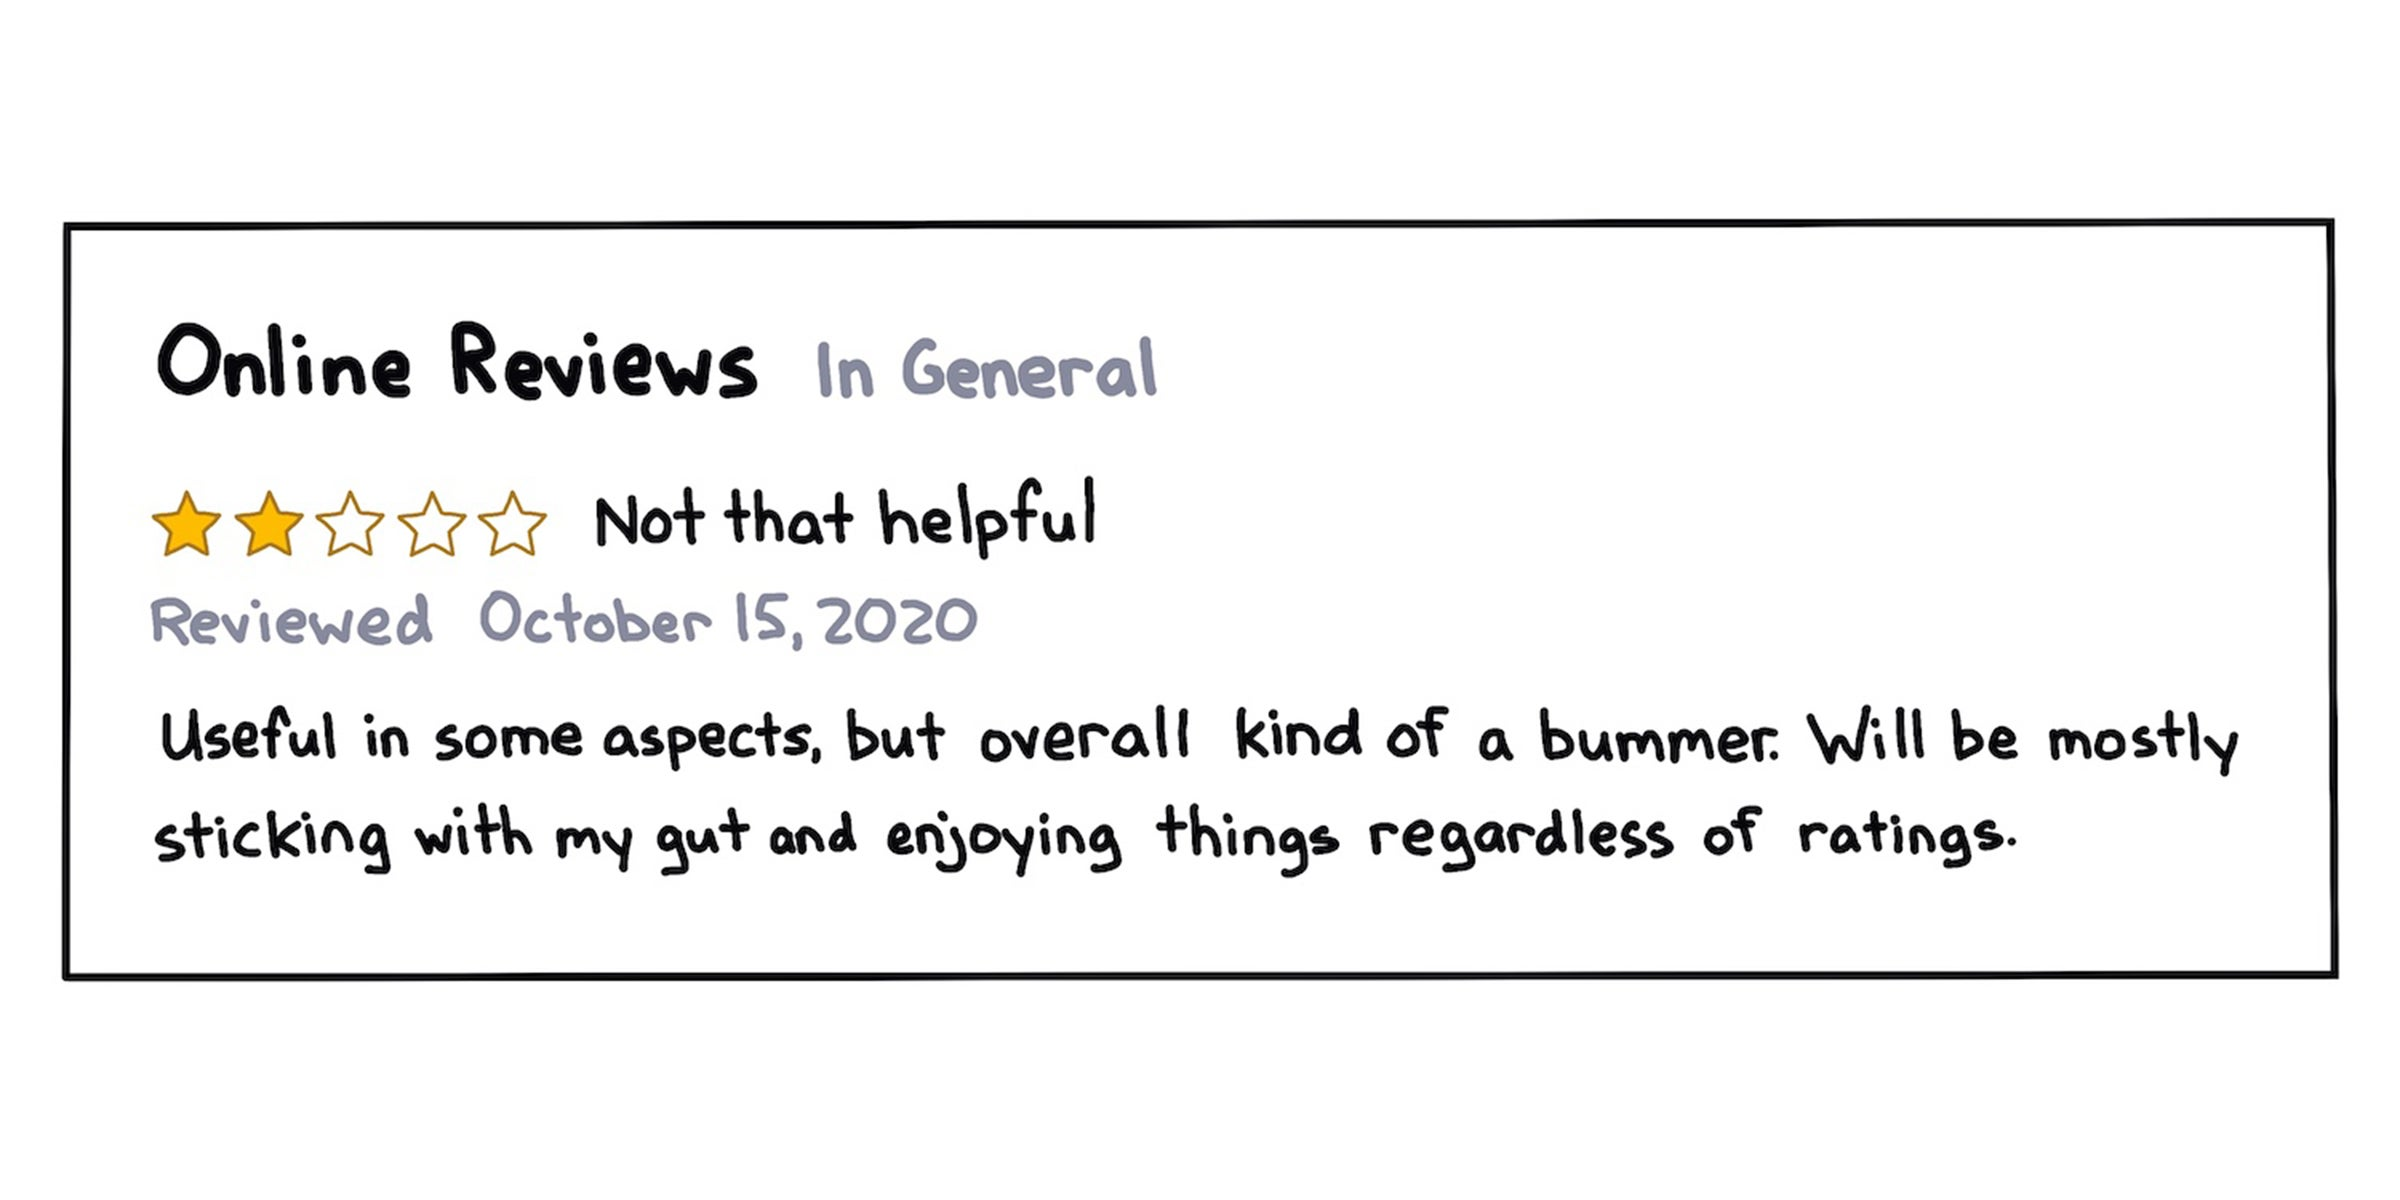 Online reviews: Not that helpful